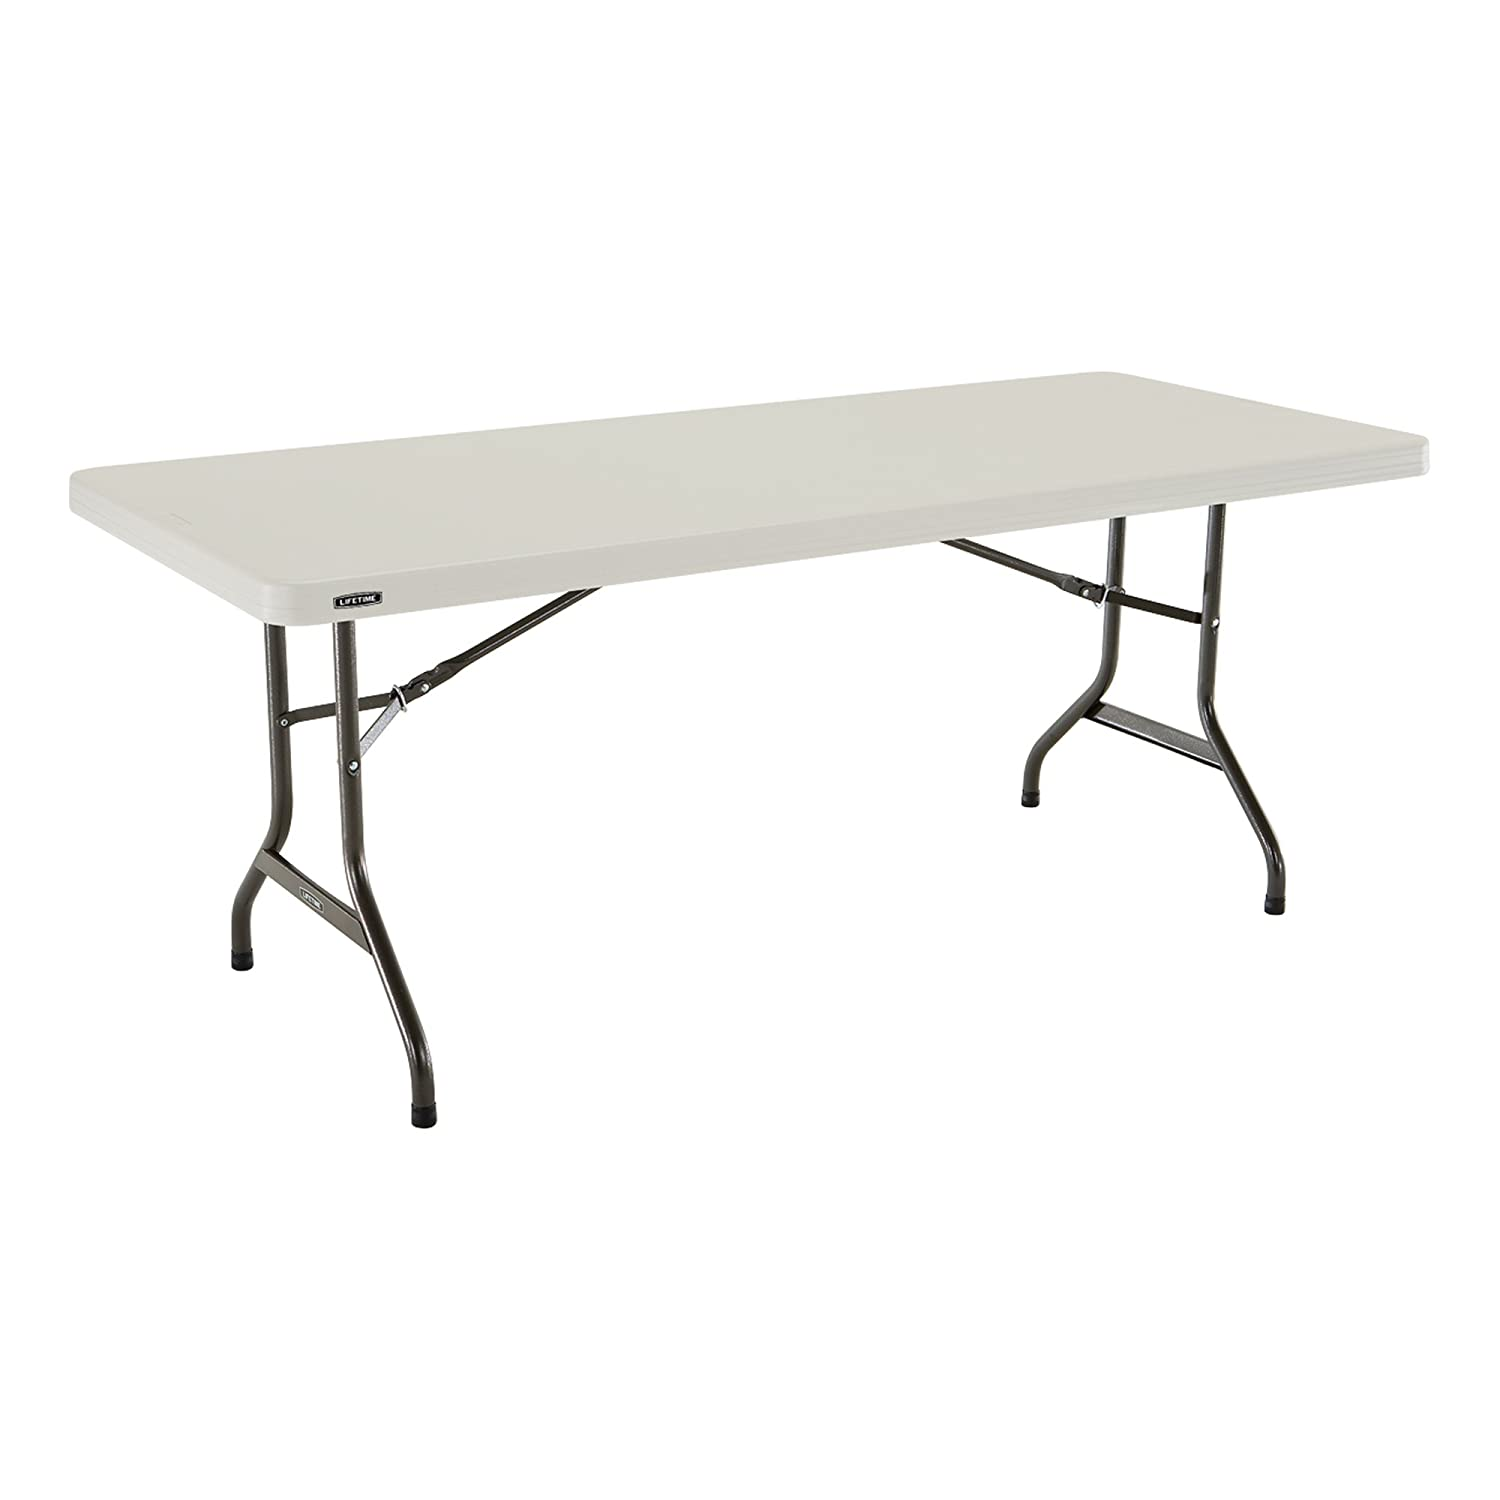 x ft table series rectangle rectangular folding blow classic molded solid plastic